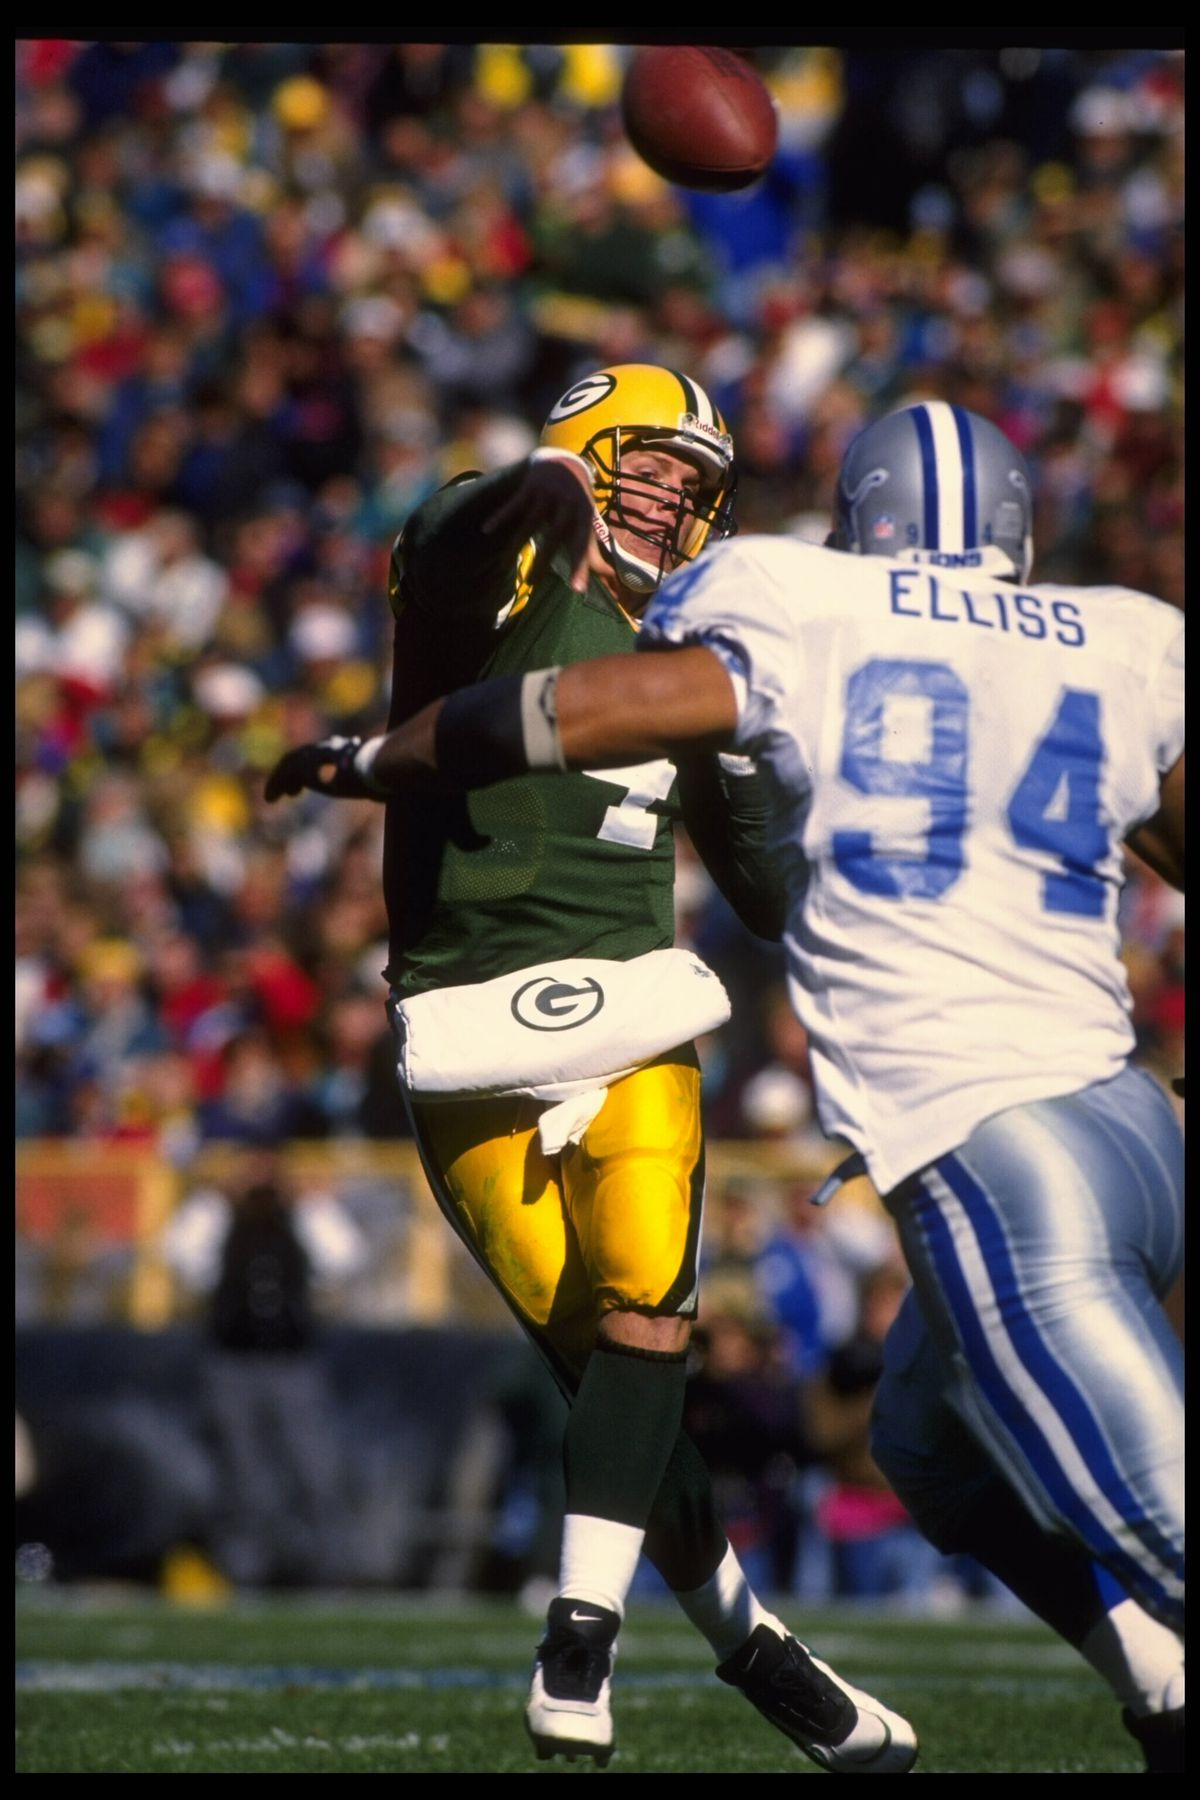 Luther Ellis Packers